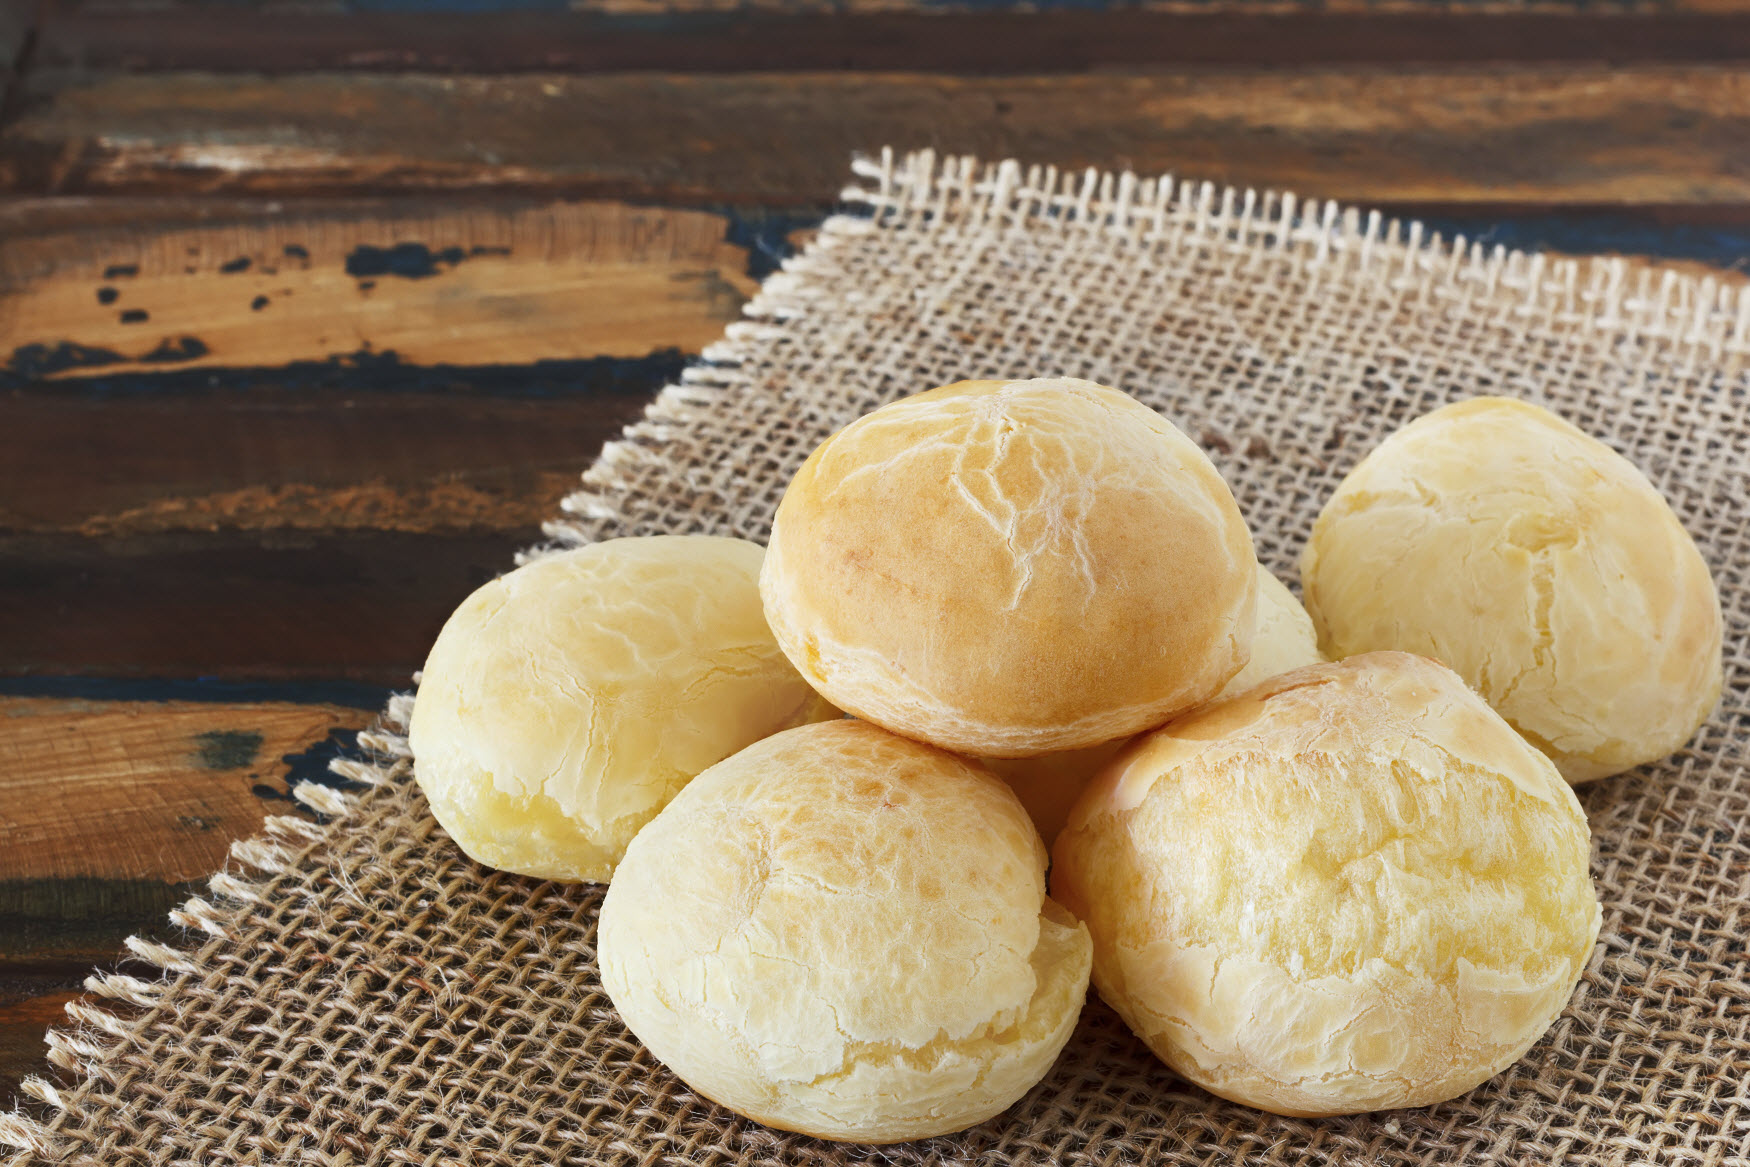 This image: Pao de queijo or cheese bread is a typical Brazilian snack.